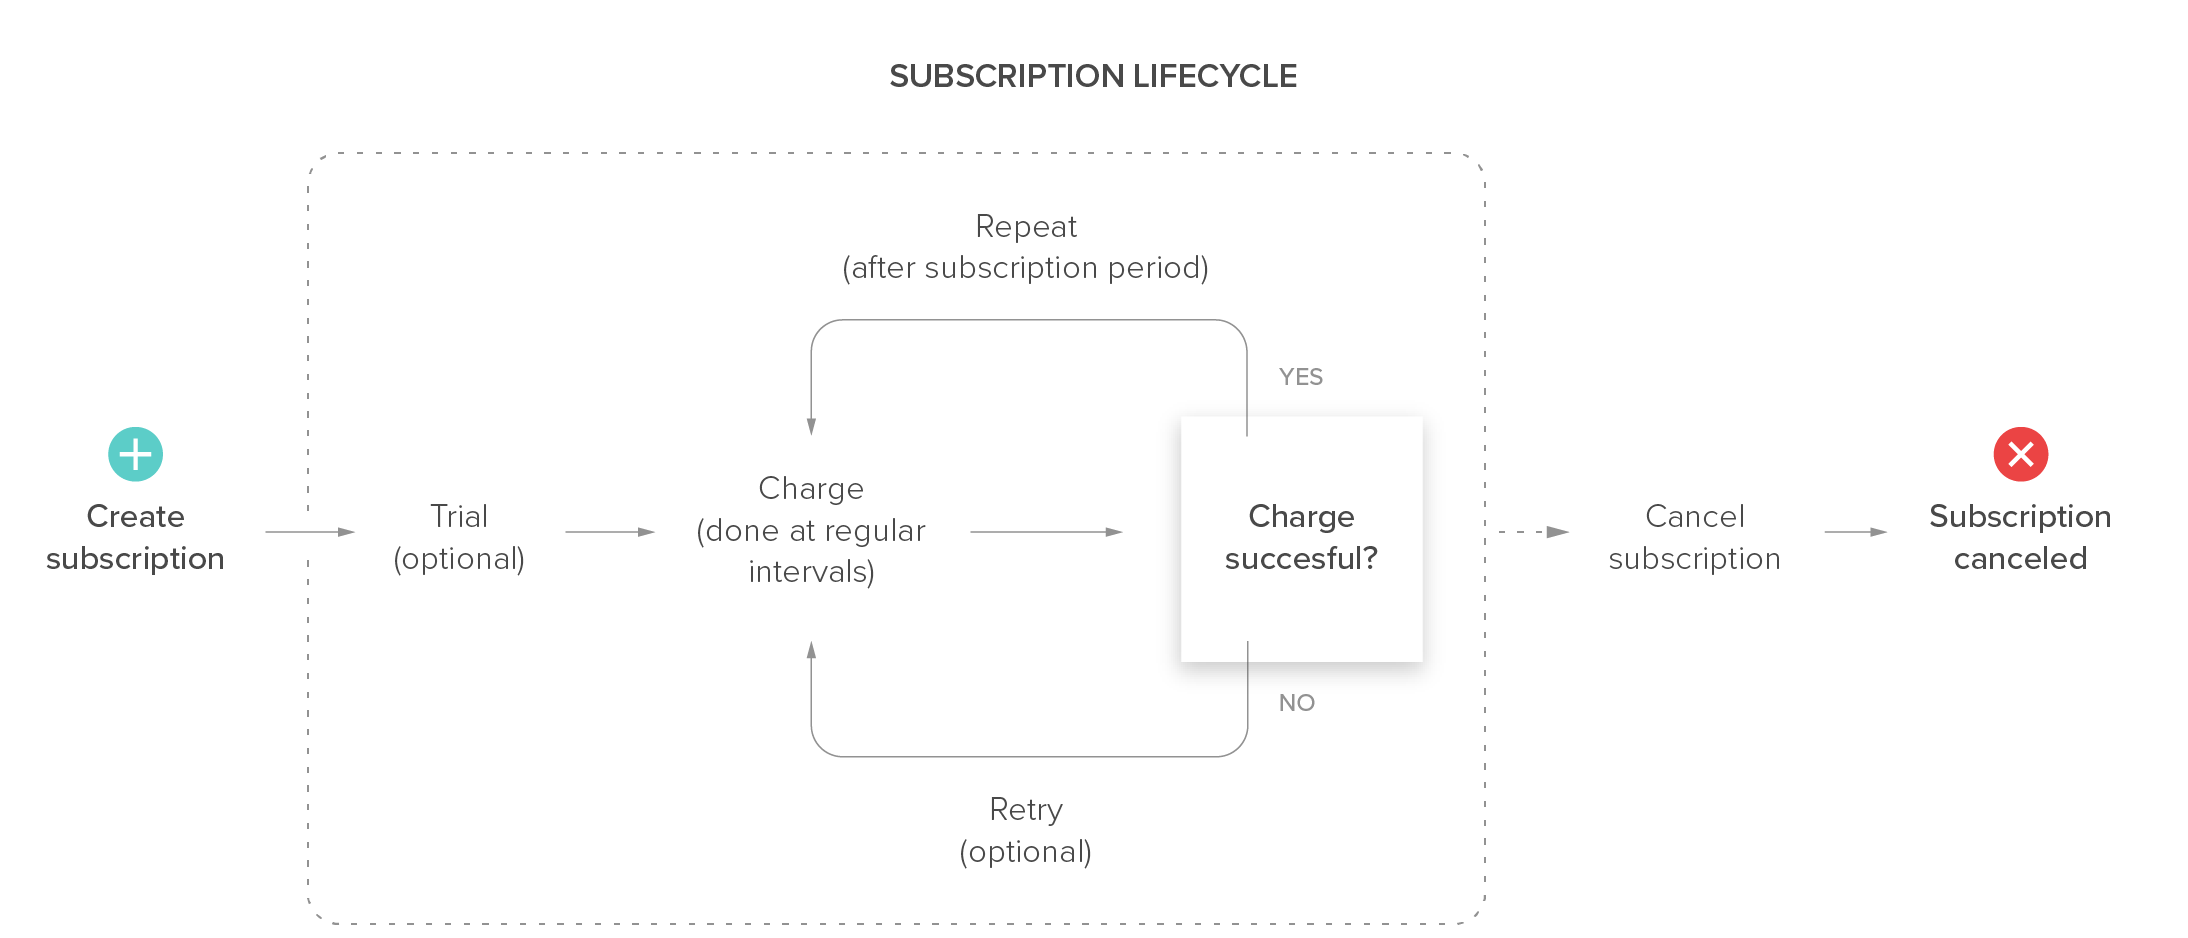 Diagram showing what can happen to a subscription during it lifecycle. It's described below.